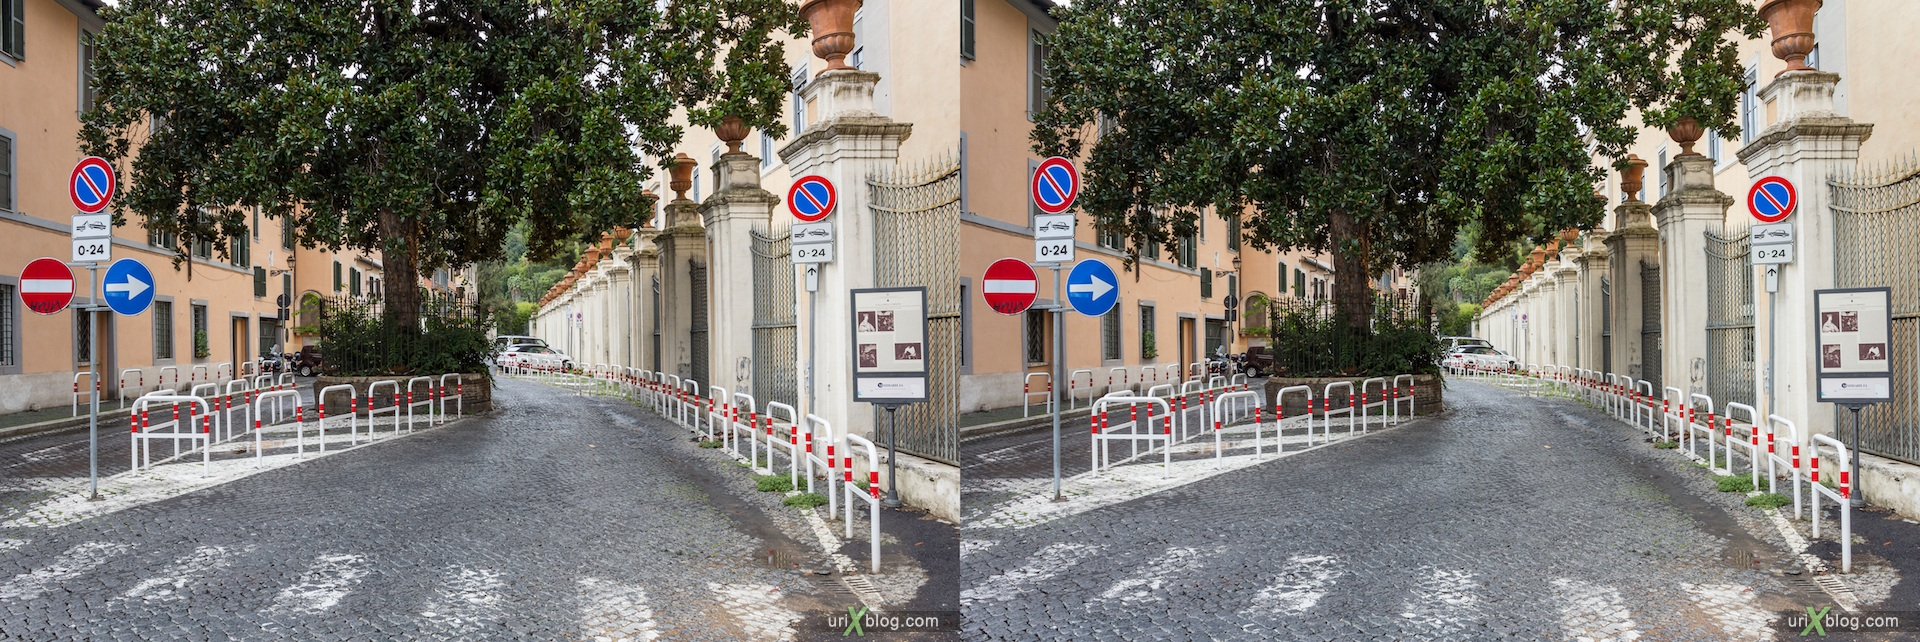 2012, Corsini street, della Lungara street, crosswalk, Rome, Italy, Europe, 3D, stereo pair, cross-eyed, crossview, cross view stereo pair